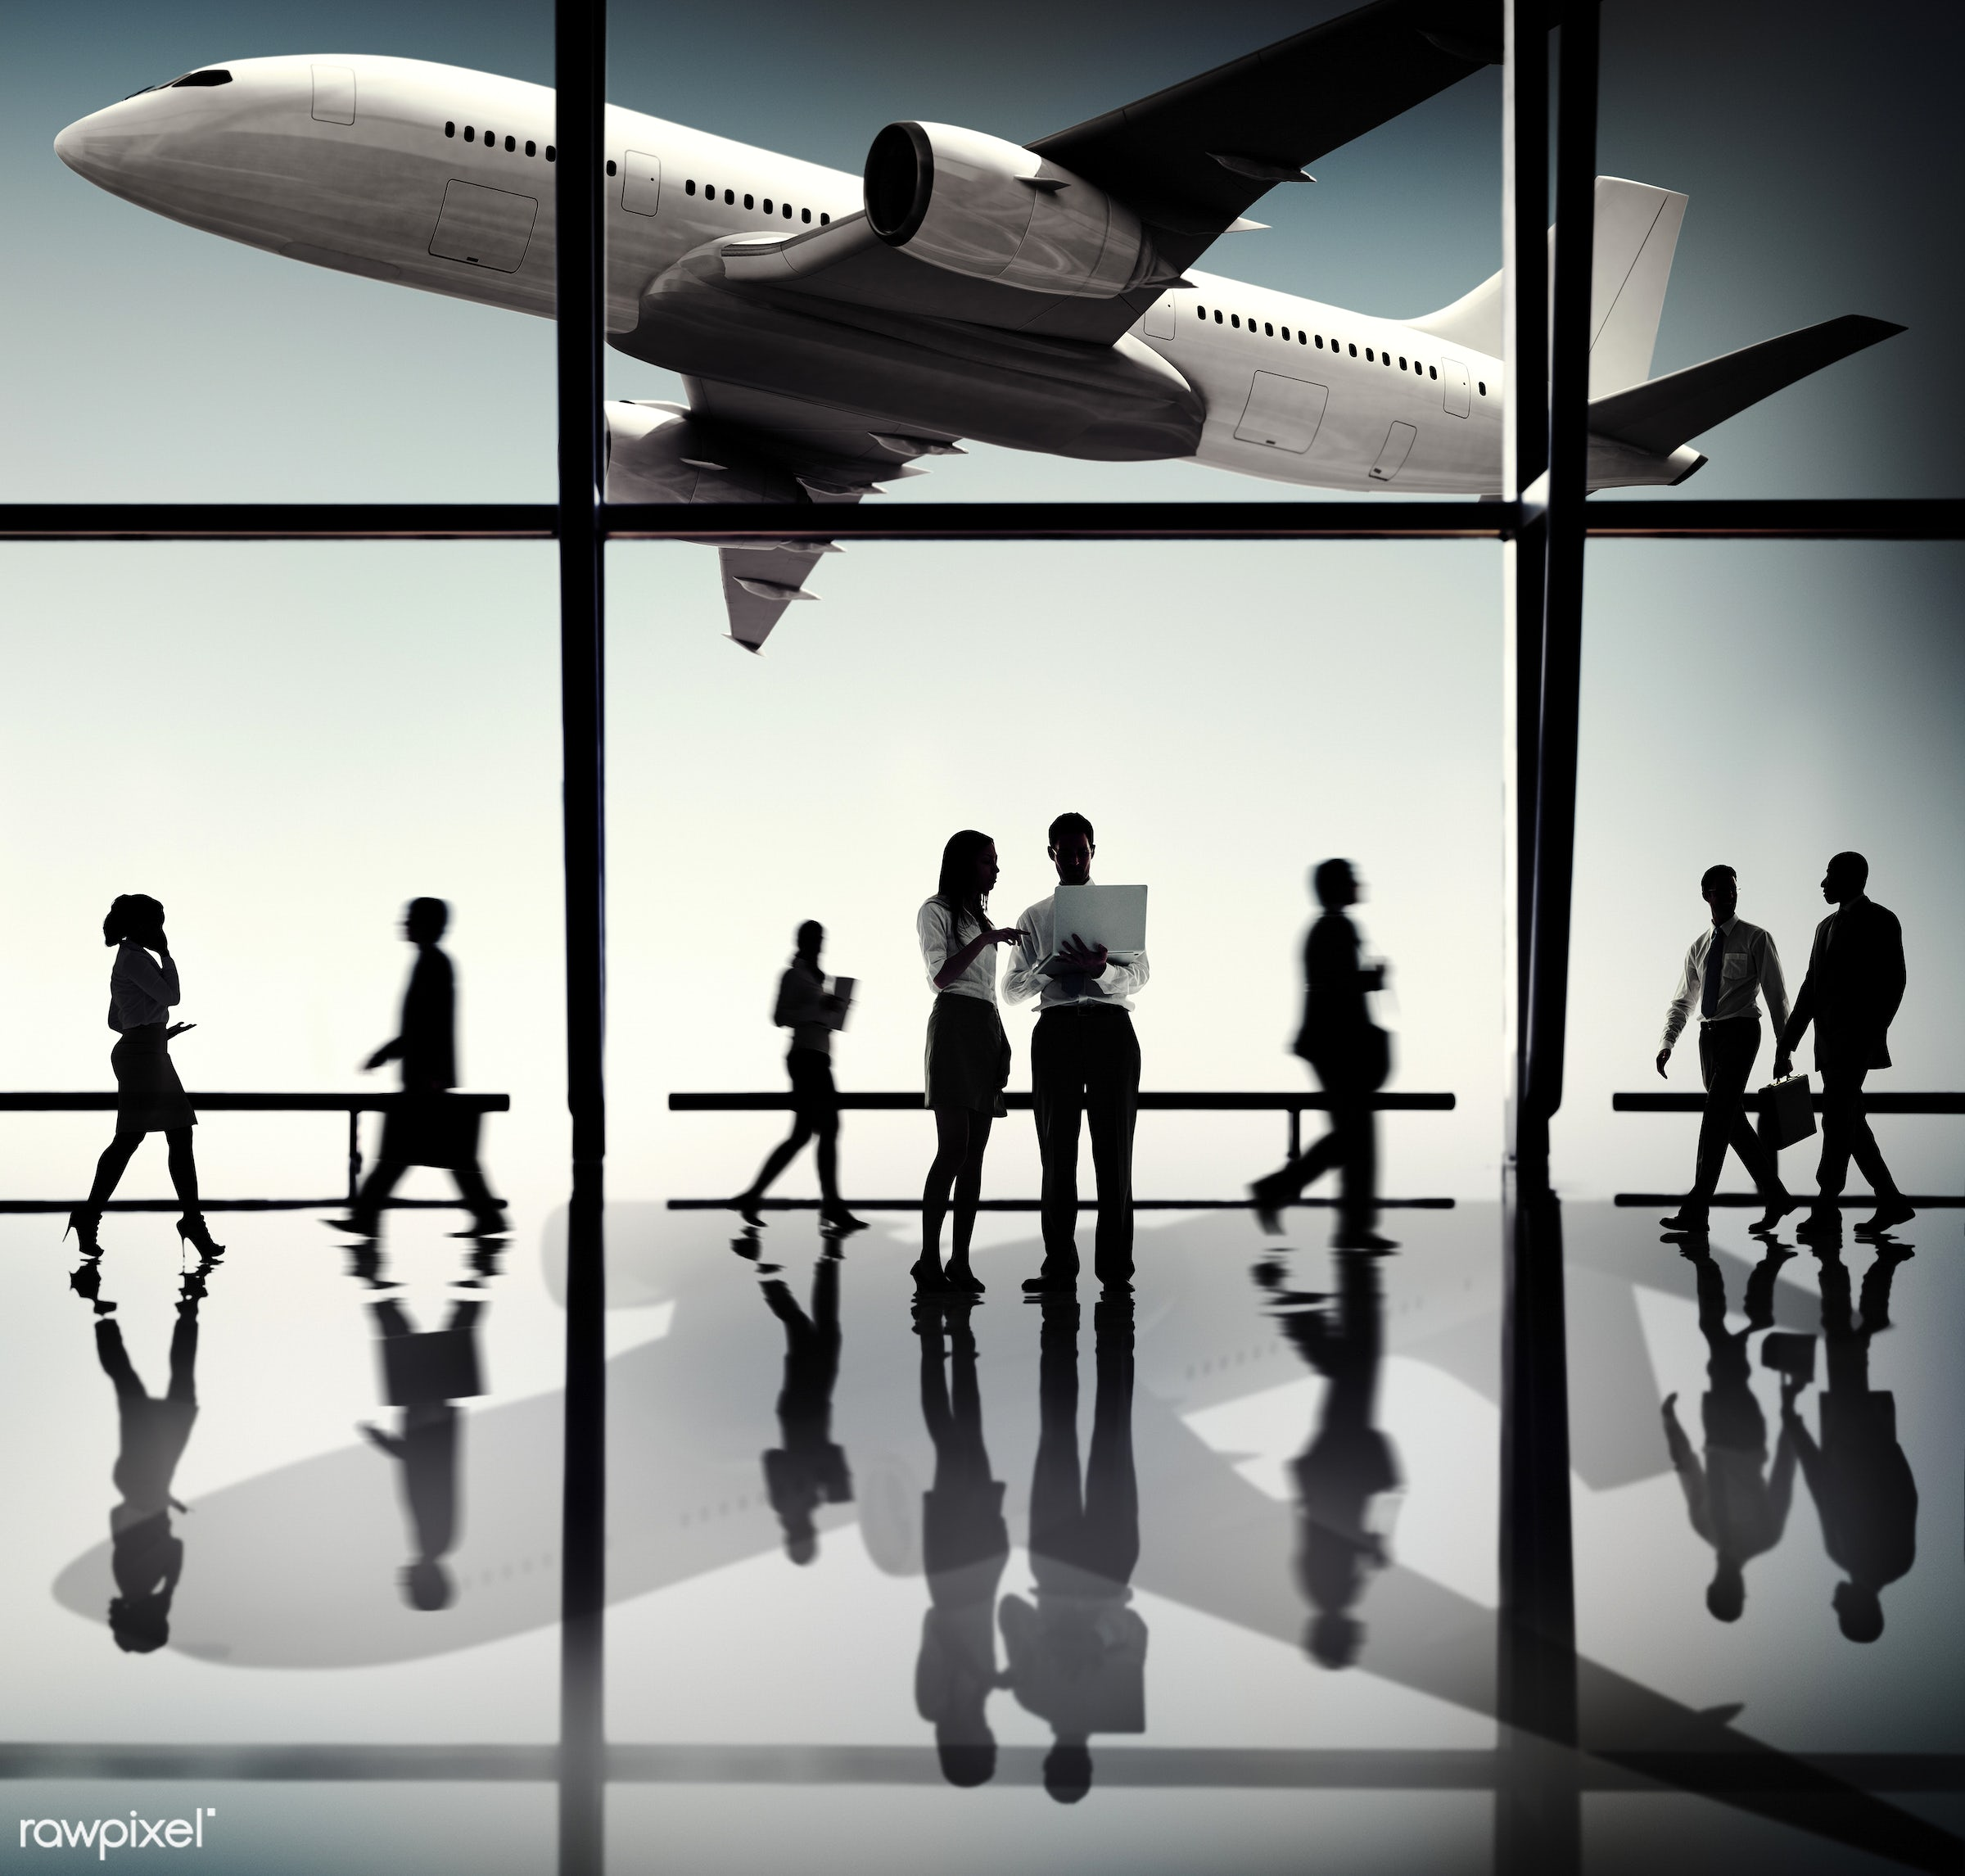 showing, aircraft, airplane, airport, business people, business travel, businessmen, businesswomen, communication,...